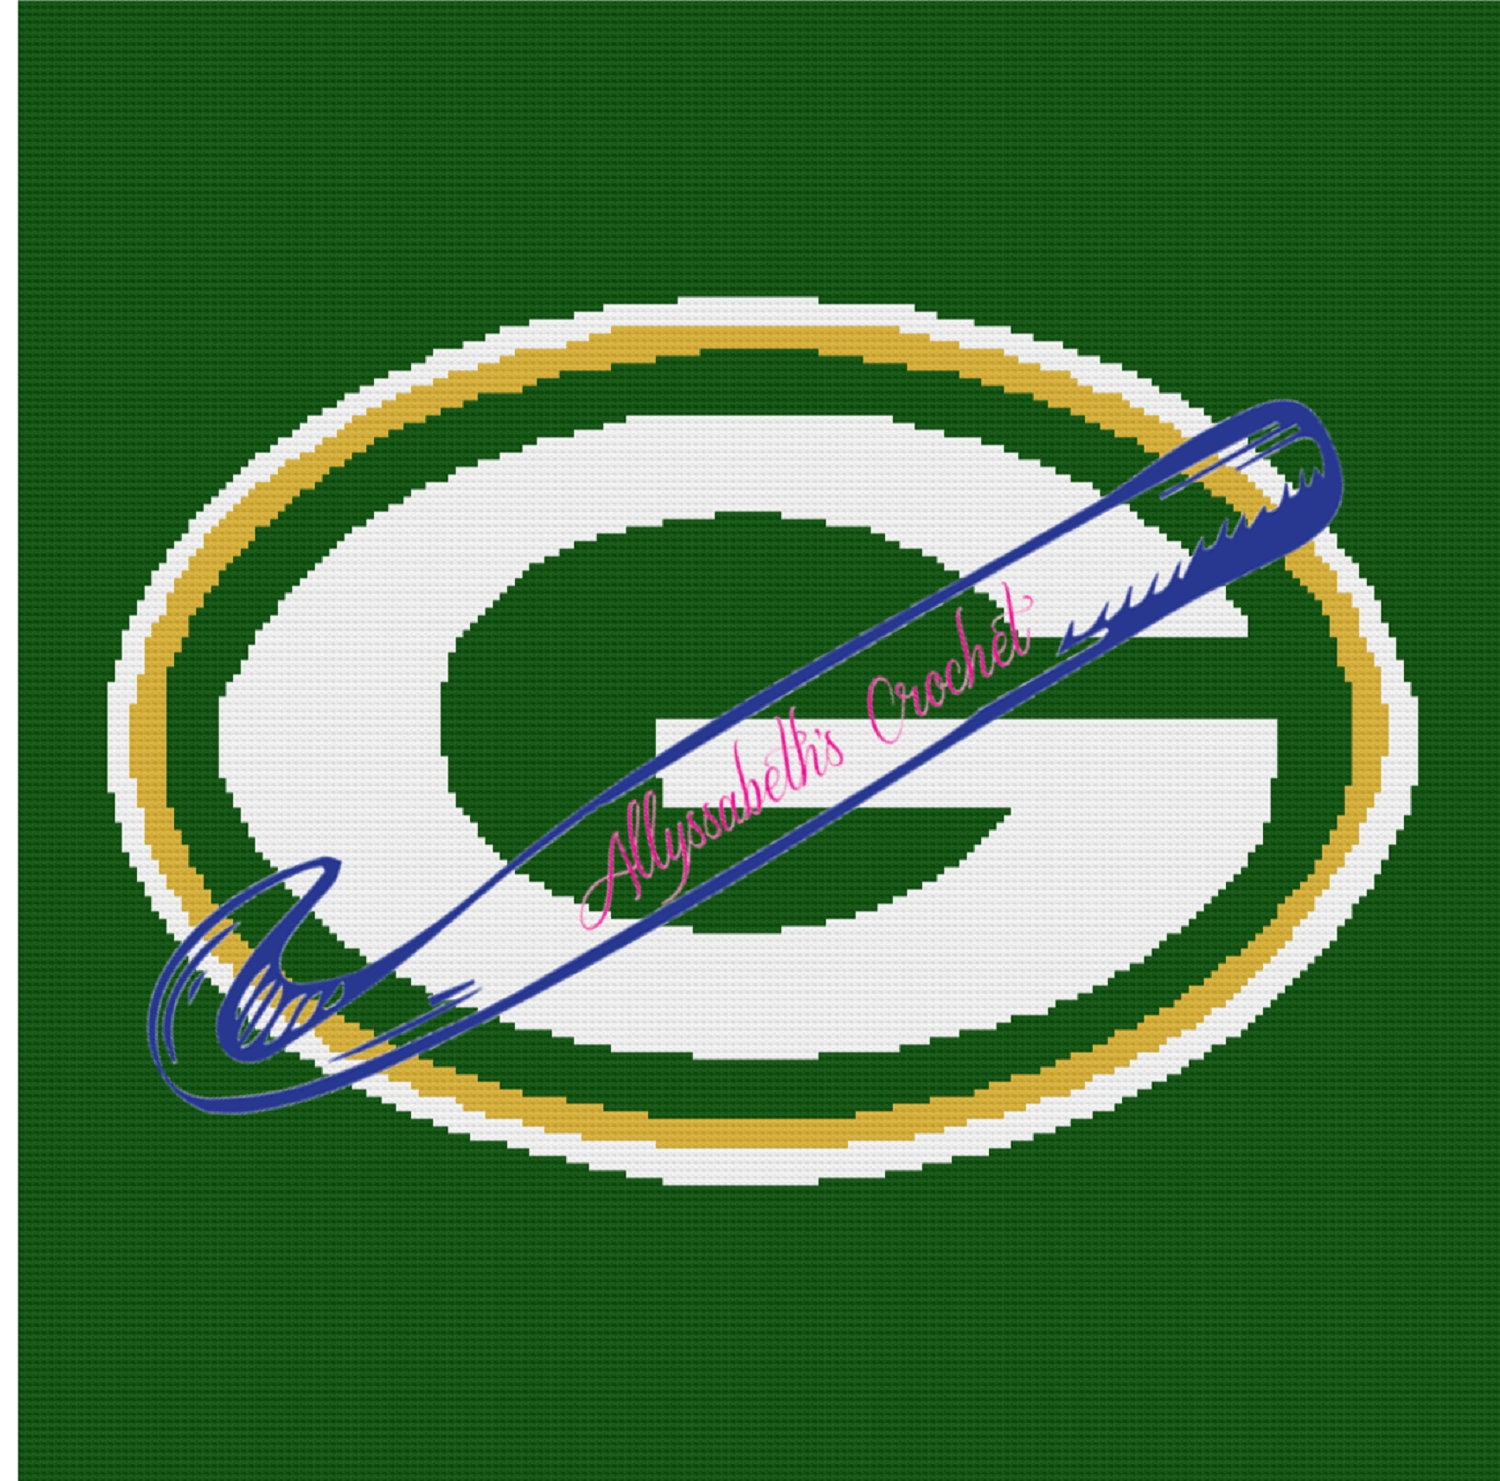 98bb746d Green Bay Packers Afghan Graphghan Single Crochet Pattern Graph Row by Row  Written Instructions Logo NFL Football Cheesehead Wisconsin C2C